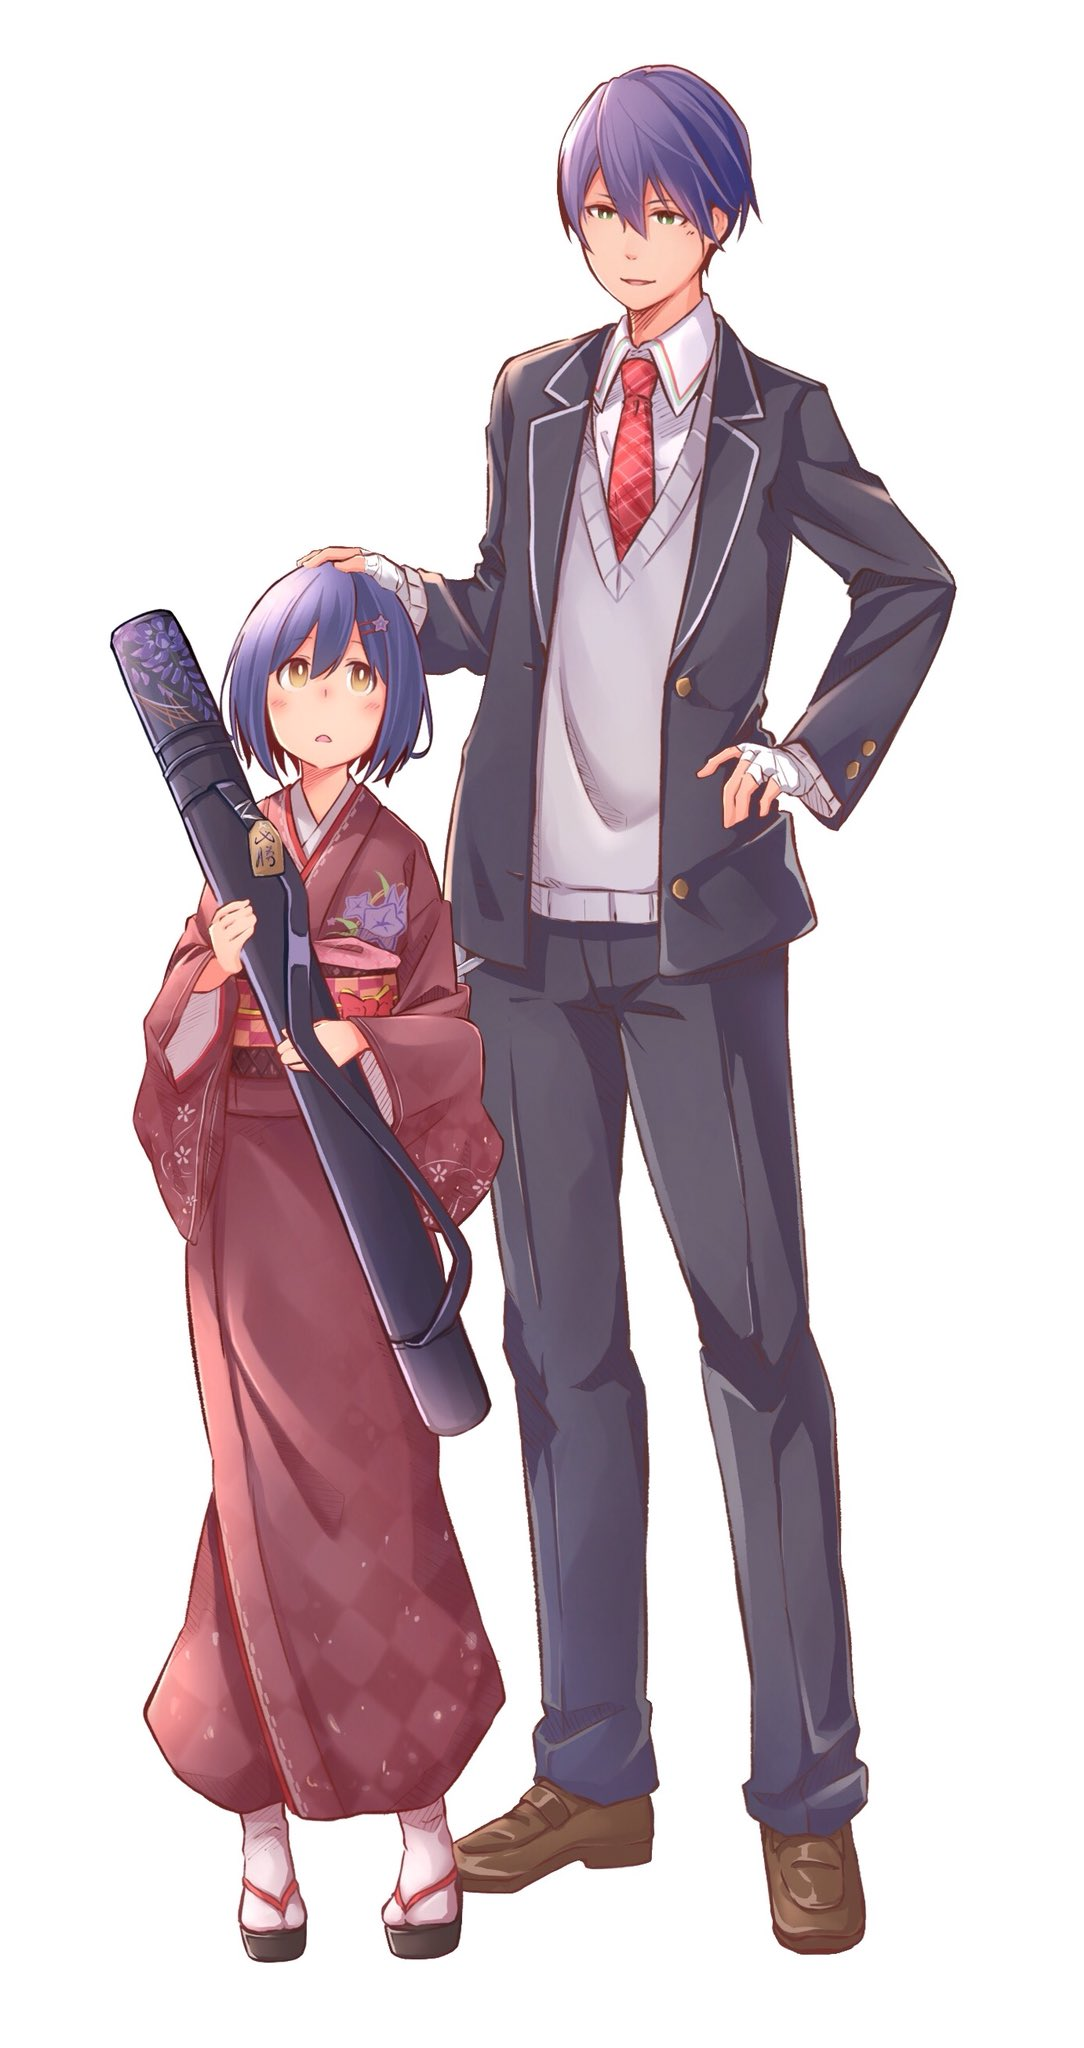 1boy 1girl bandage bandaged_hands bandages blue_hair charm_(object) gakuran green_eyes hand_on_another's_head hand_on_hip height_difference highres japanese_clothes kenmochi_touya mikokomiyazawa necktie nijisanji school_uniform shizuka_rin short_hair smile standing sweater virtual_youtuber white_background wide_sleeves yellow_eyes younger